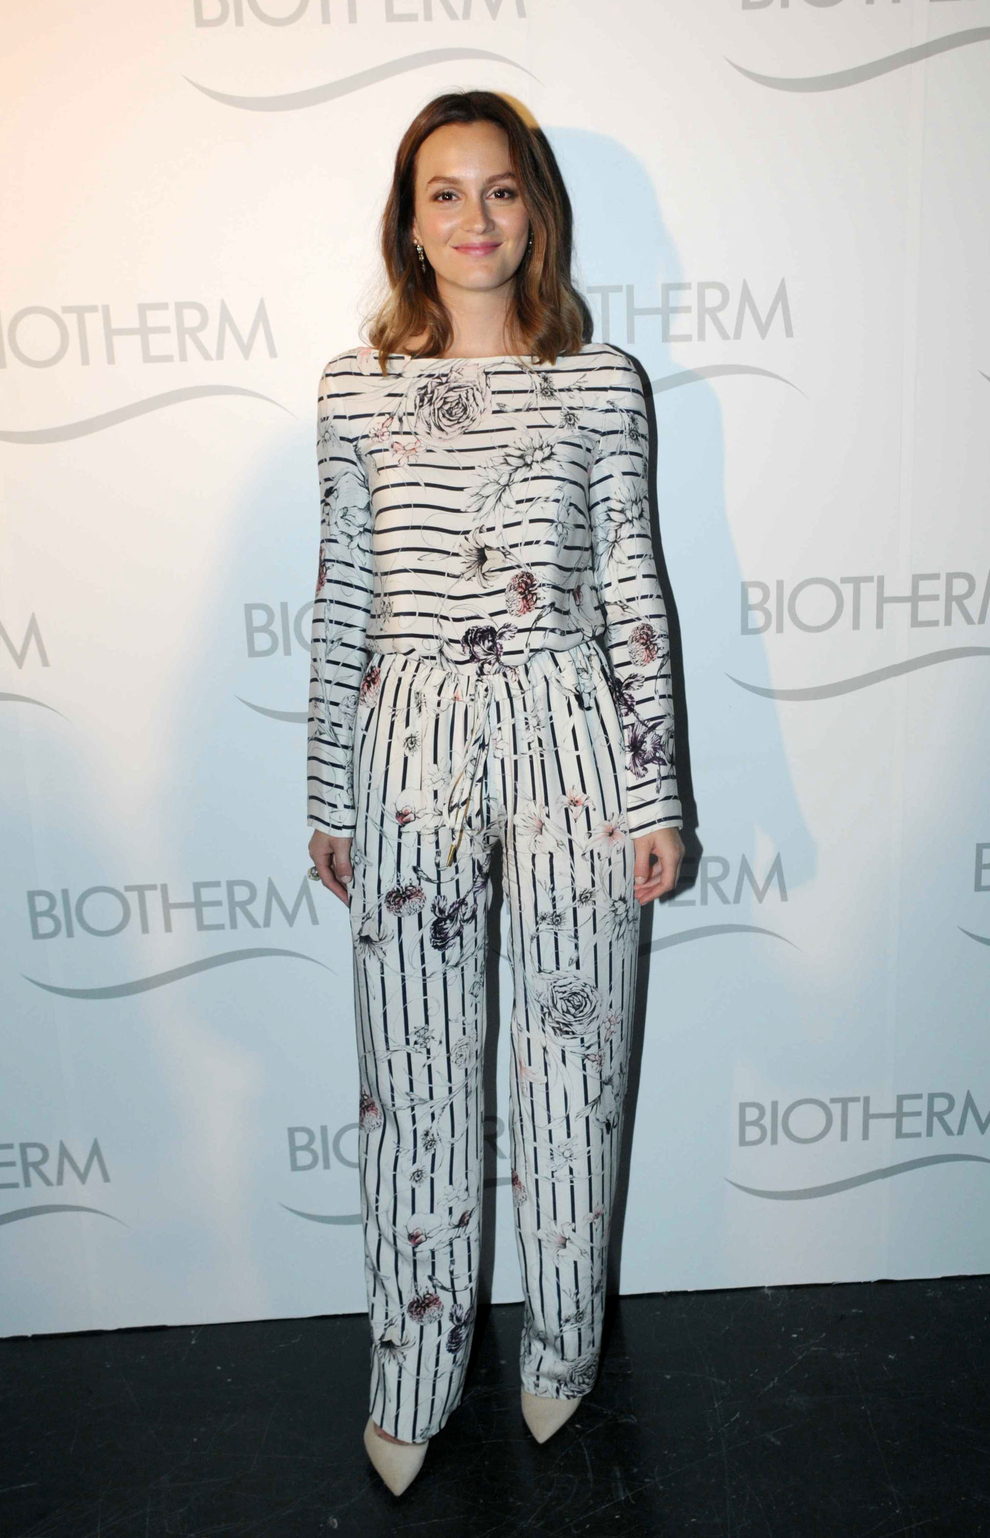 Leighton Meester At A Biotherm Event In Shanghai, China